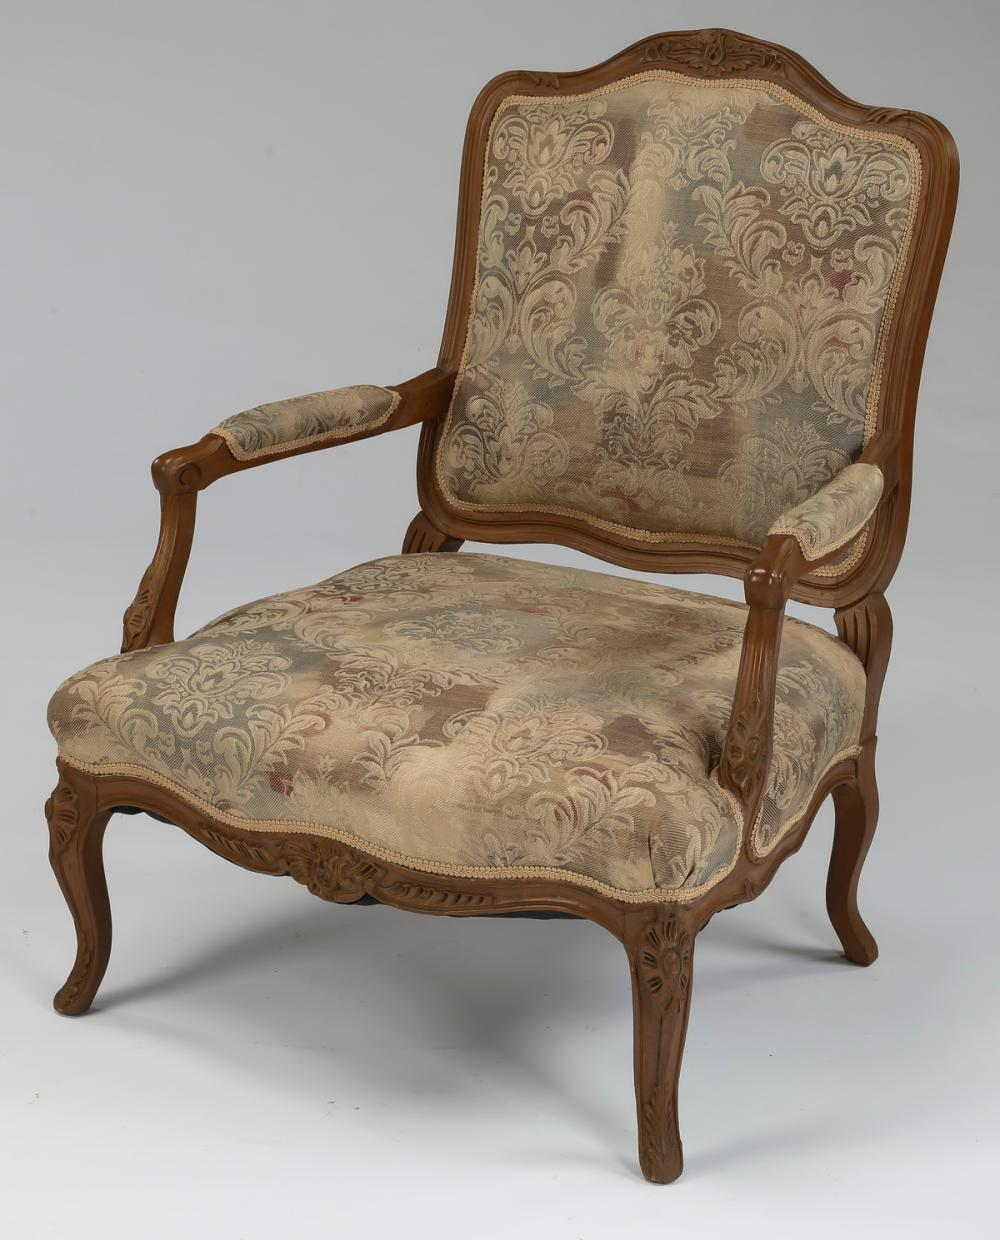 Carved fauteuil in the Louis XV taste